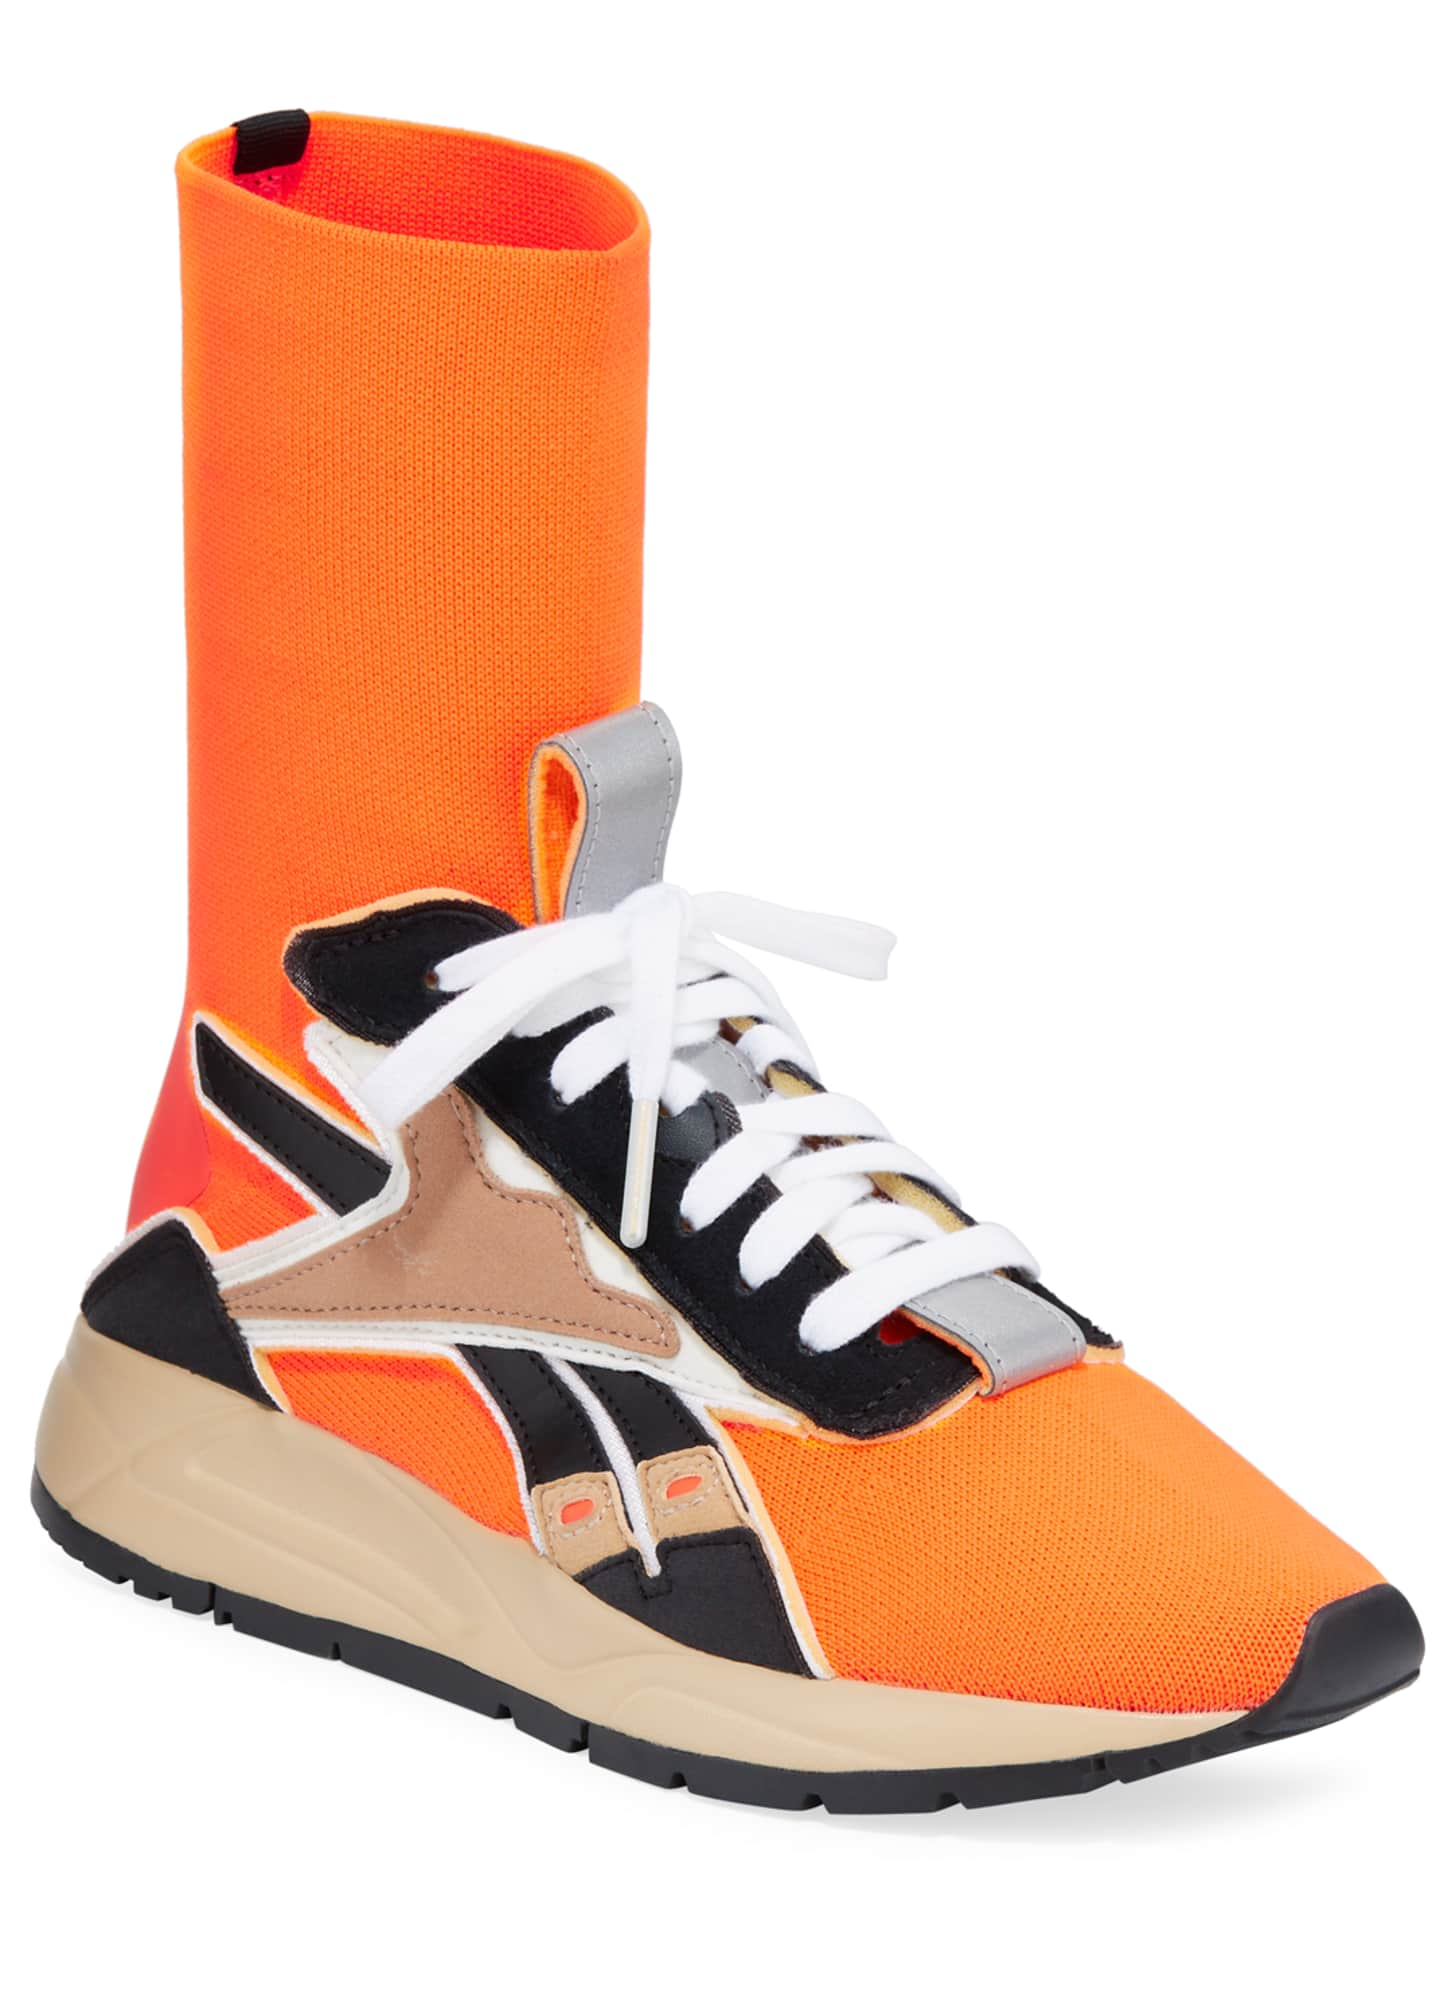 Reebok by Victoria Beckham Bolton Stretch-Knit Sock Sneakers,